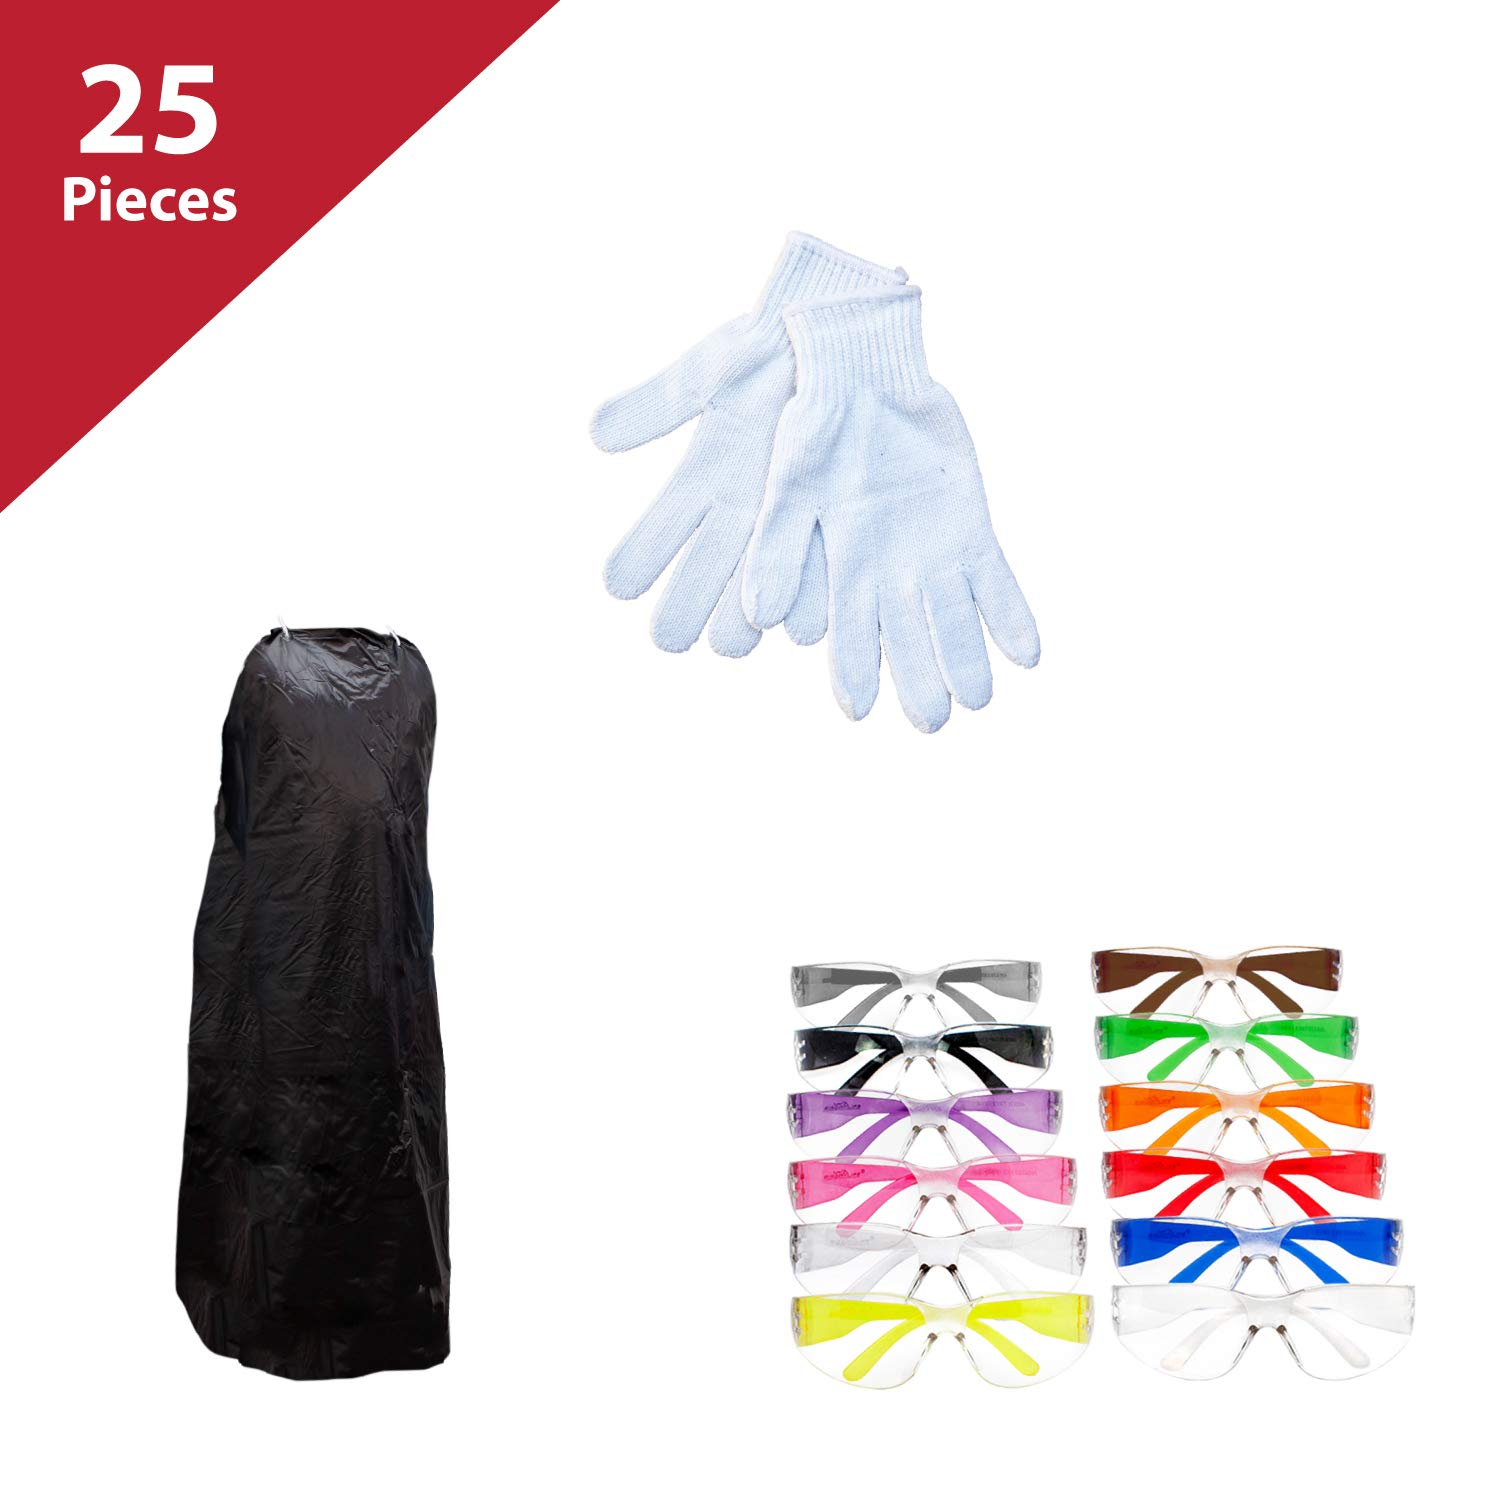 SAFE HANDLER 25 Pieces Work Station Safety Kit | Knit Butcher Gloves 12 Pieces, PVC Apron, 1 pc Black, Clear Color Assorted Safety Glasses, 12 PAIRS of safety glasses